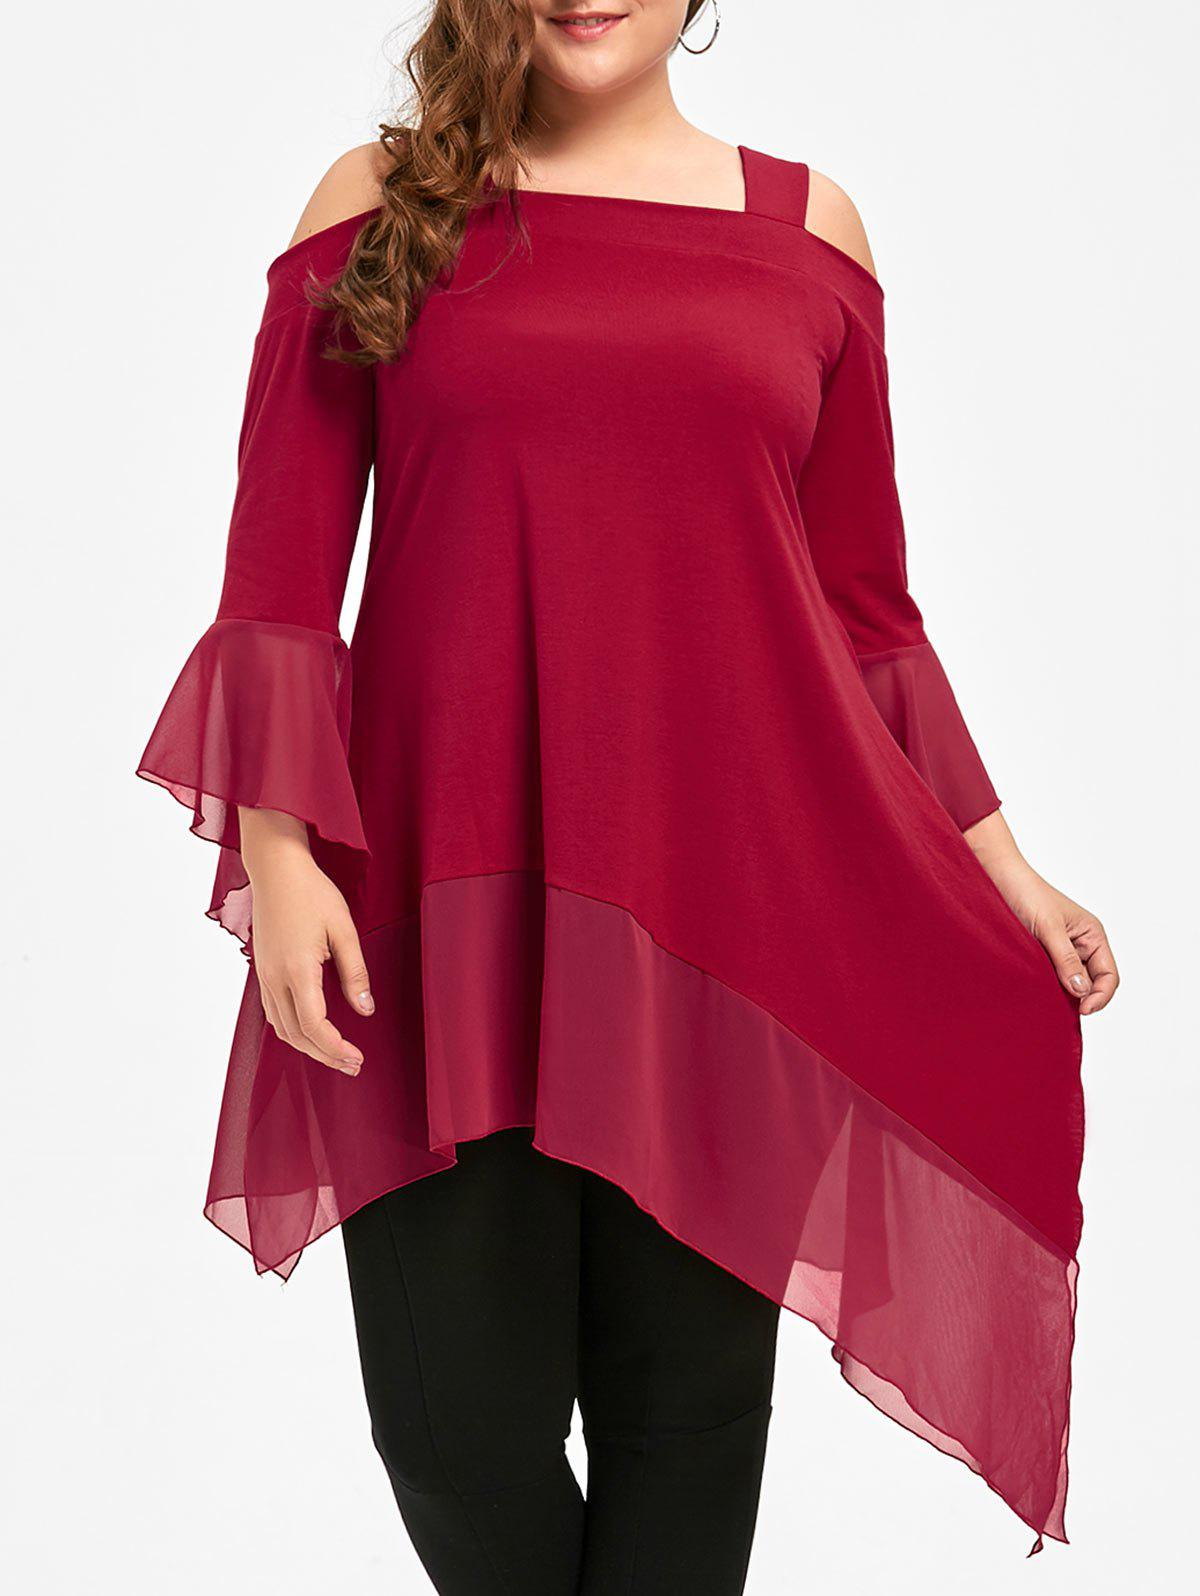 Plus Size Open Shoulder Asymmetric Tunic TopWOMEN<br><br>Size: 2XL; Color: RED; Material: Polyester,Spandex; Shirt Length: Long; Sleeve Length: Three Quarter; Collar: Square Neck; Style: Fashion; Season: Fall,Spring; Pattern Type: Solid; Weight: 0.3500kg; Package Contents: 1 x Top;